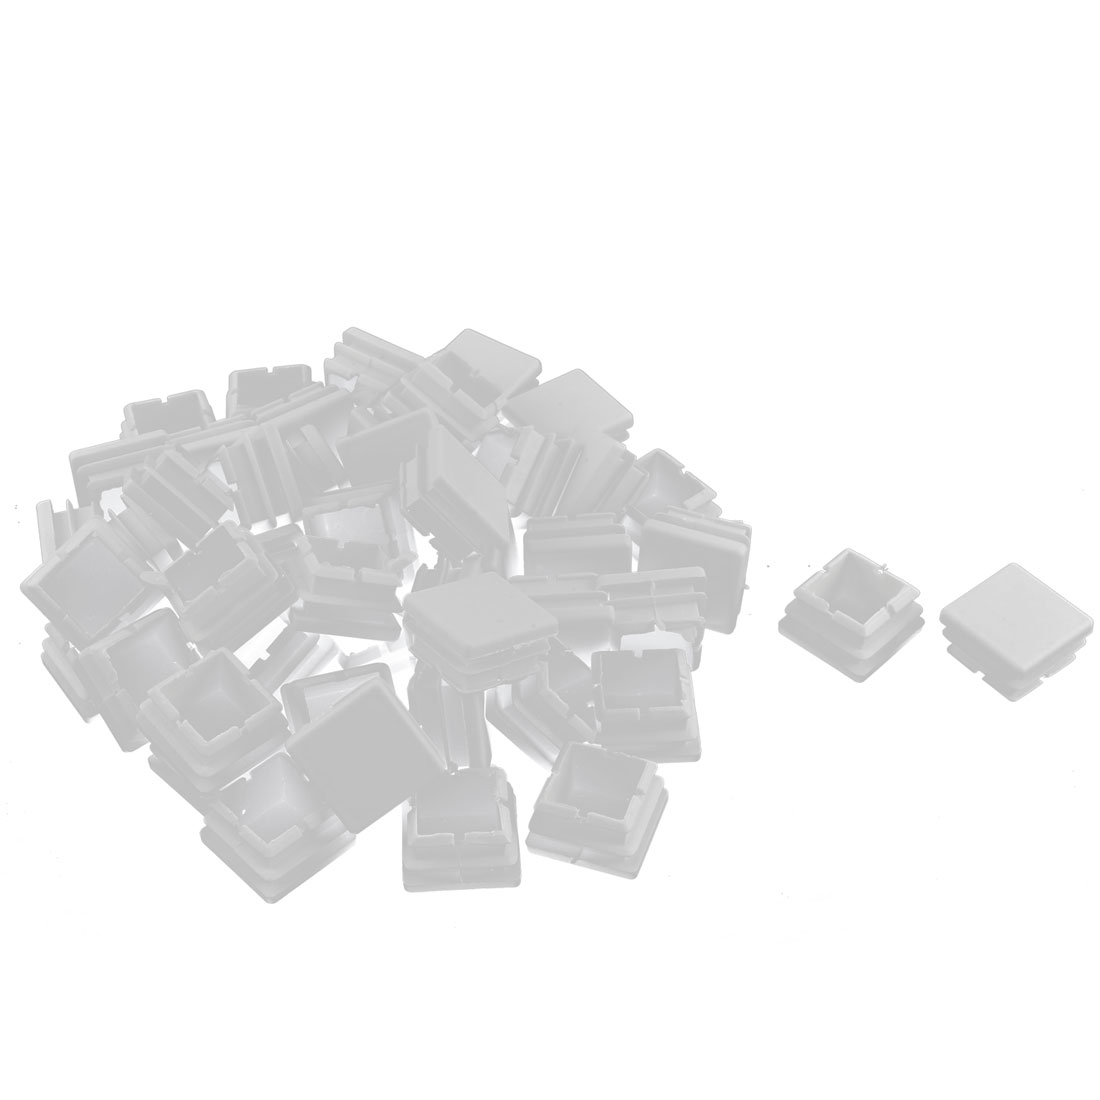 Plastic Square Tube Pipe Inserts End Blanking Caps White 25mmx25mm 50 Pcs